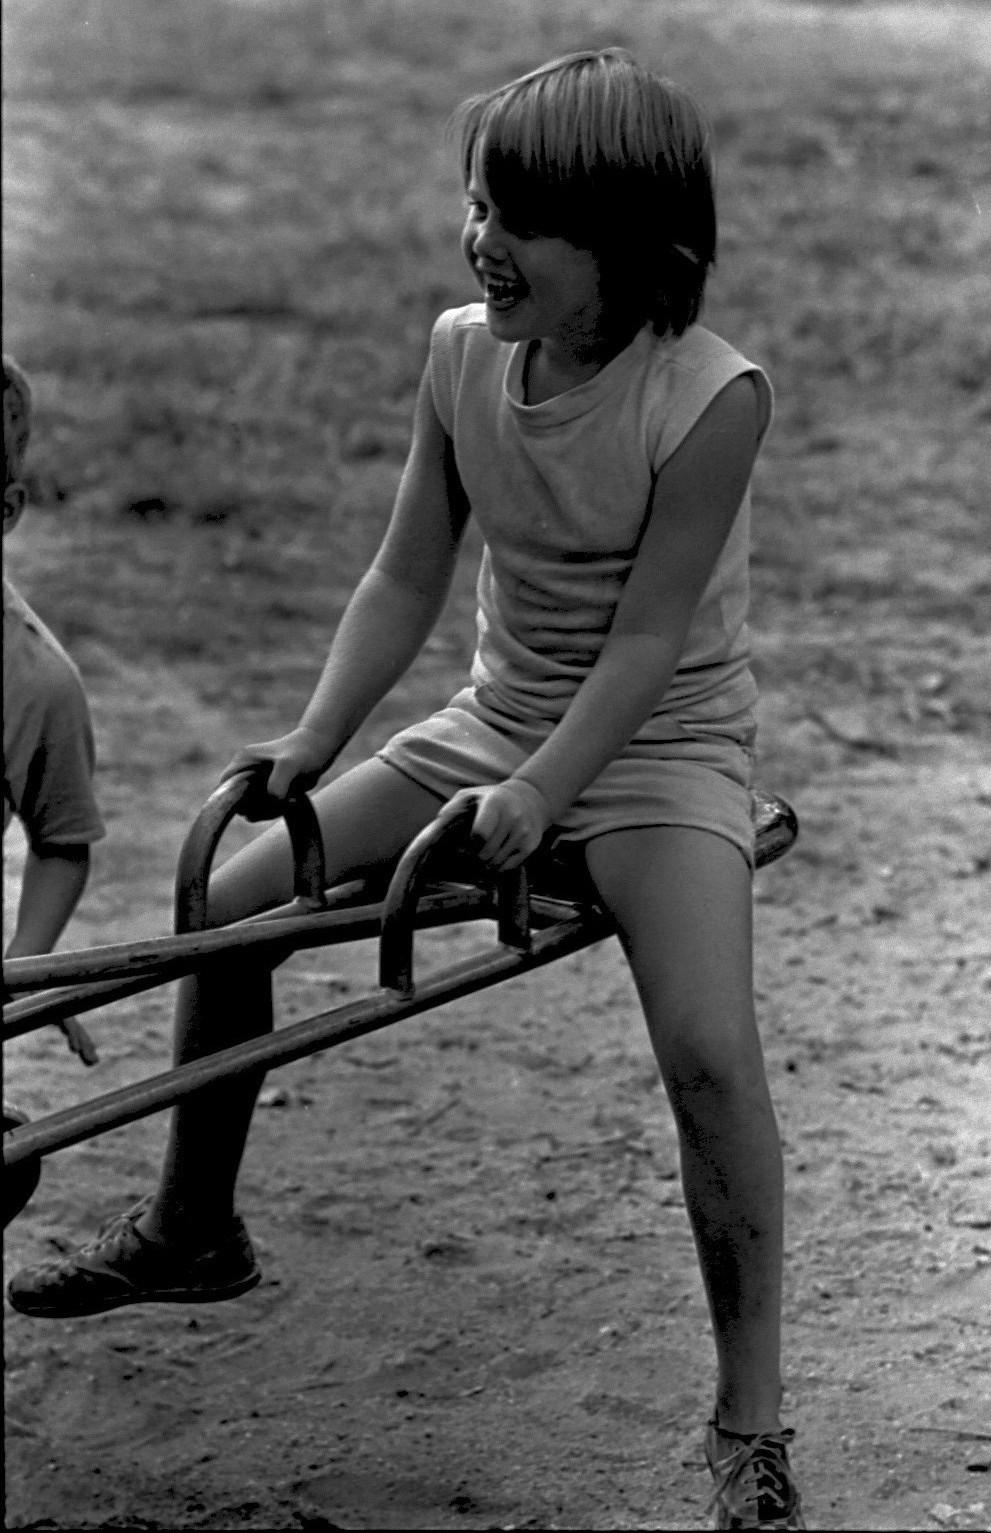 Bowie Living Cute Kids In Bowie Summer 1973